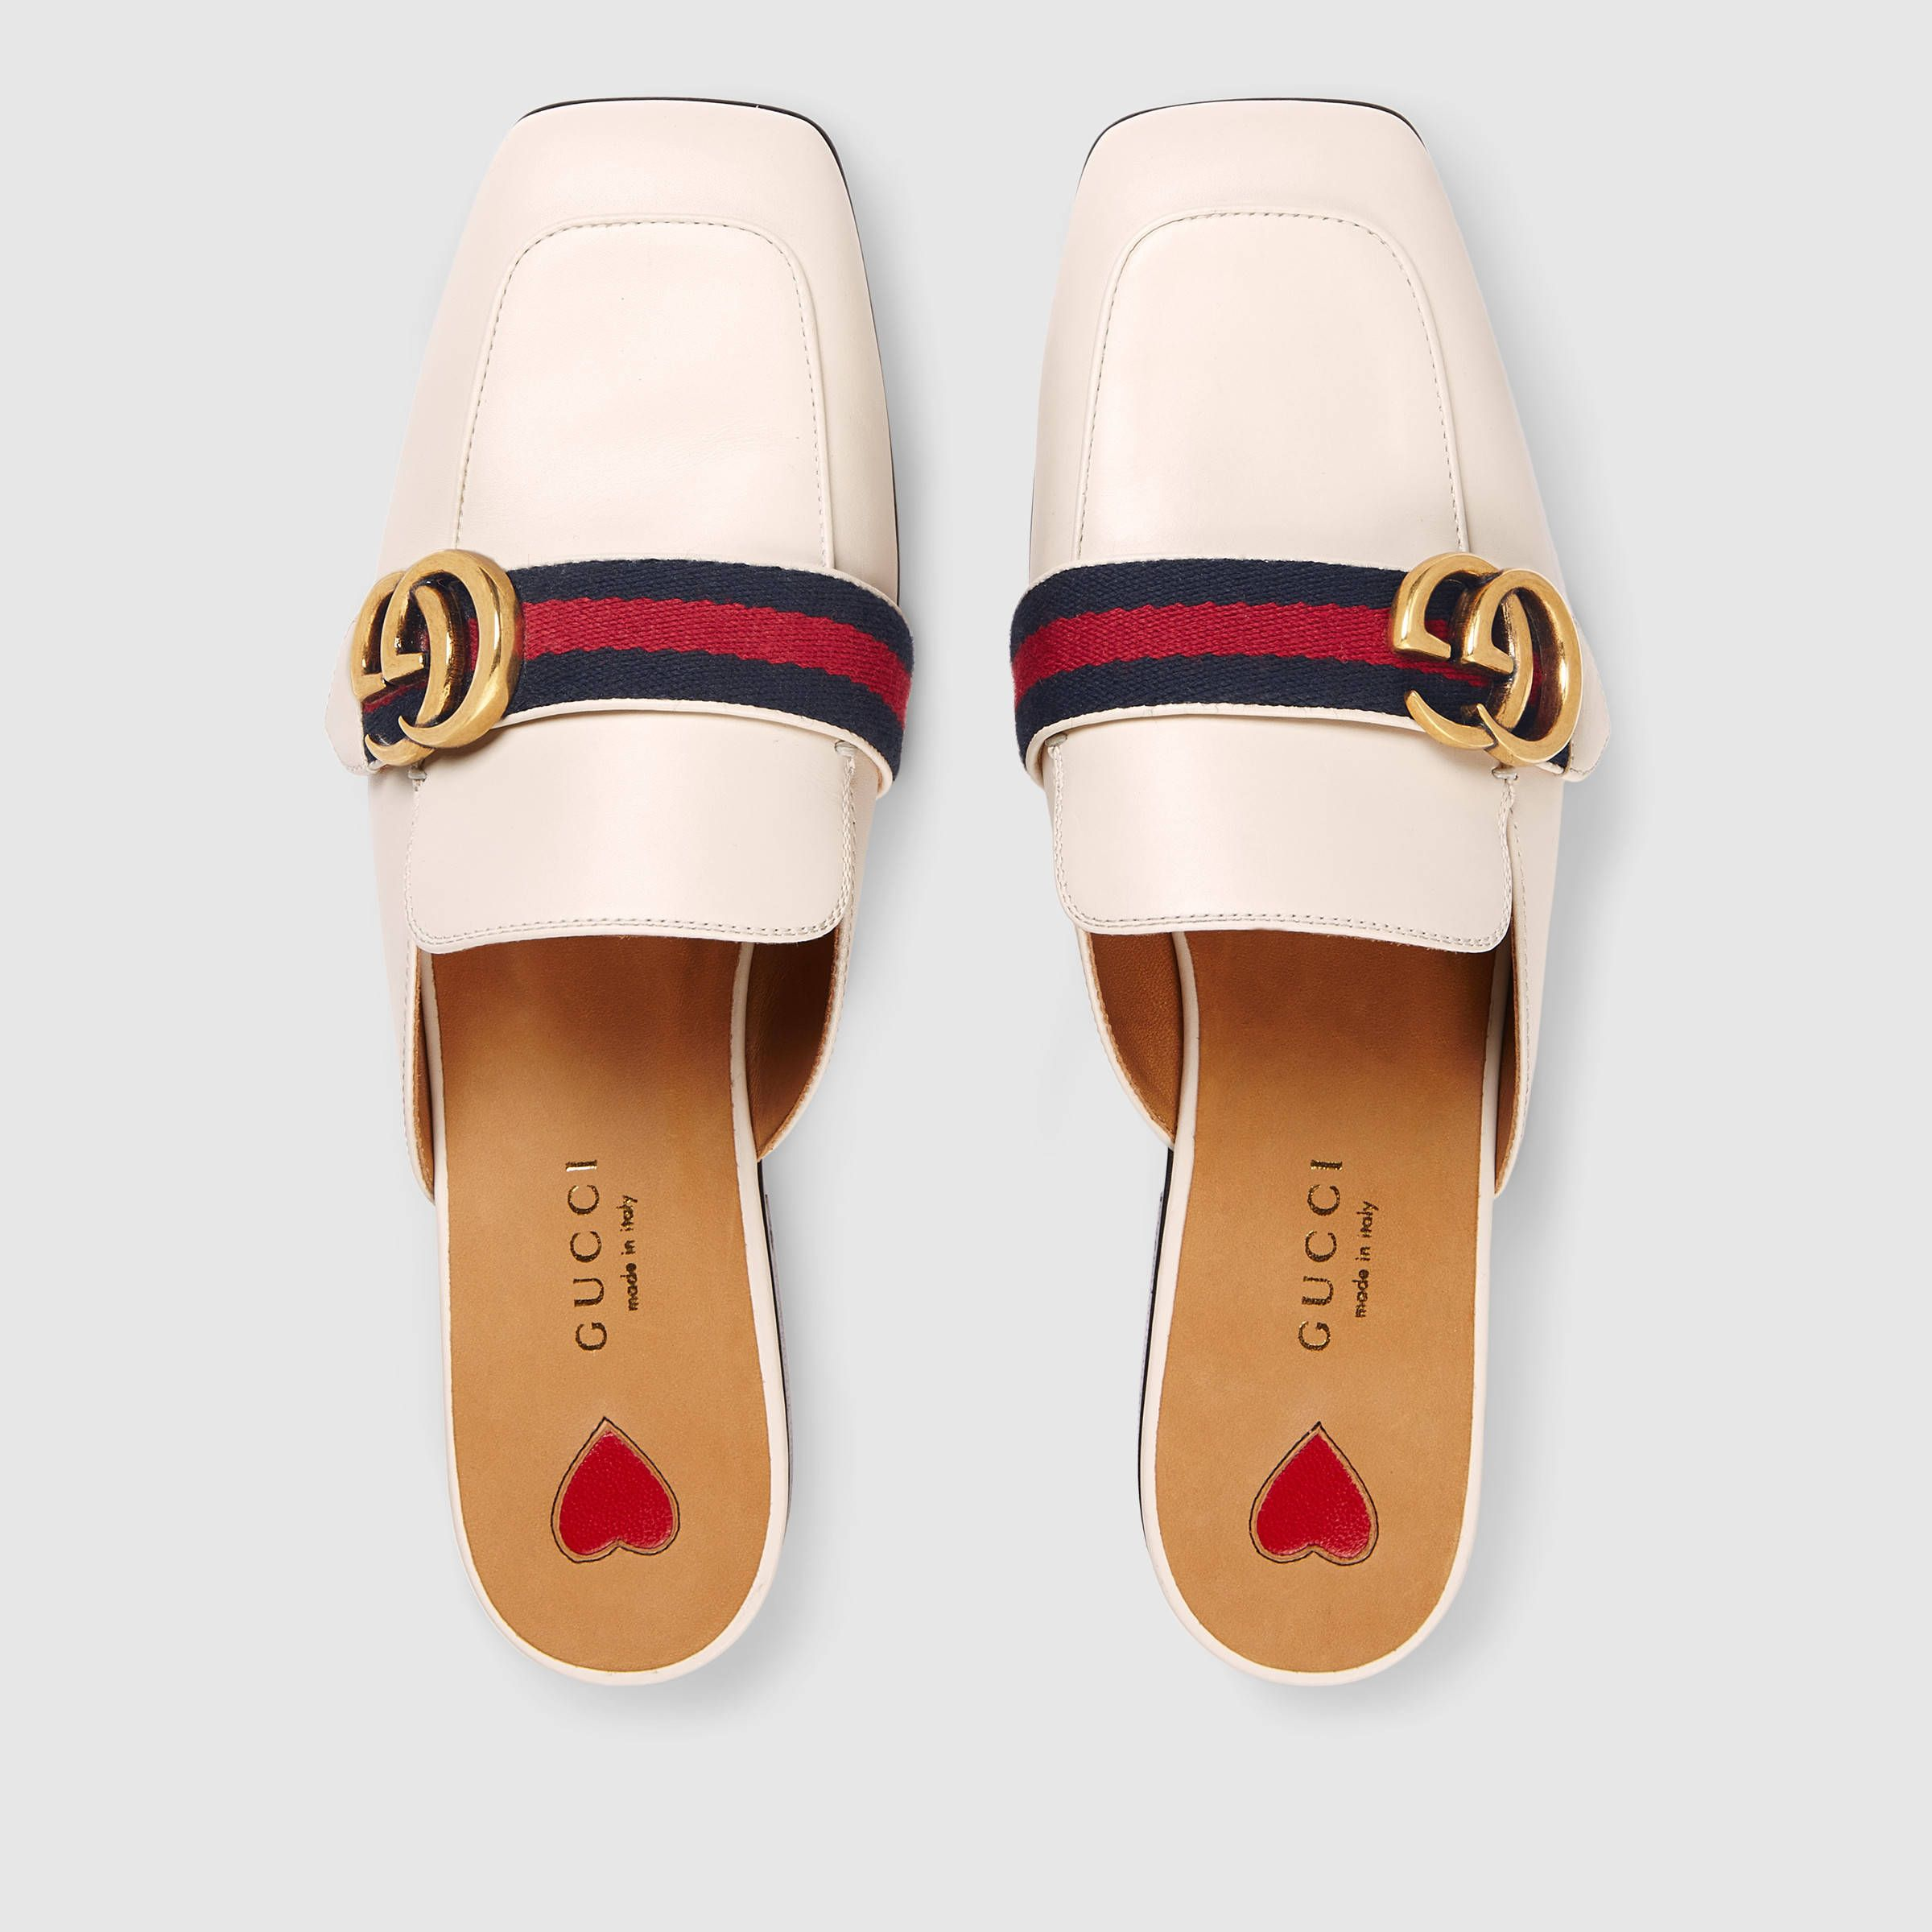 Gucci Leather slipper   Leather shoes